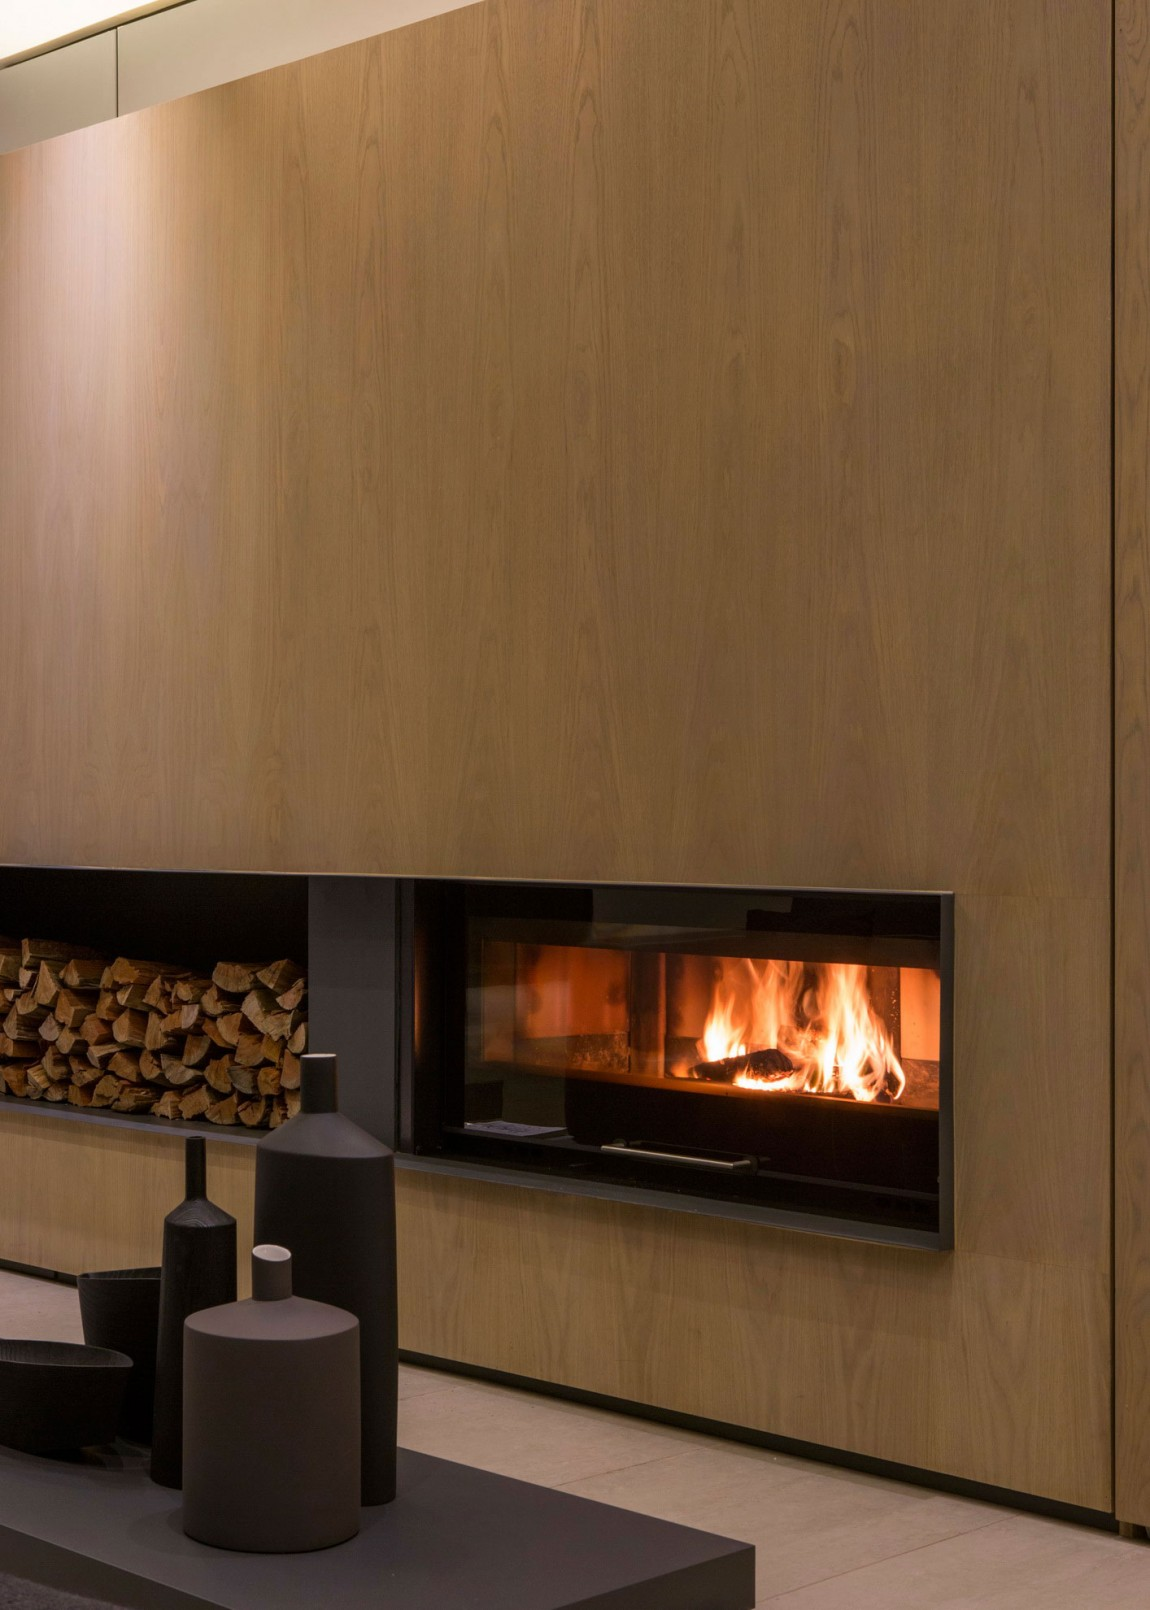 Modern fireplace in House Sar by Nico van der Meulen Architects